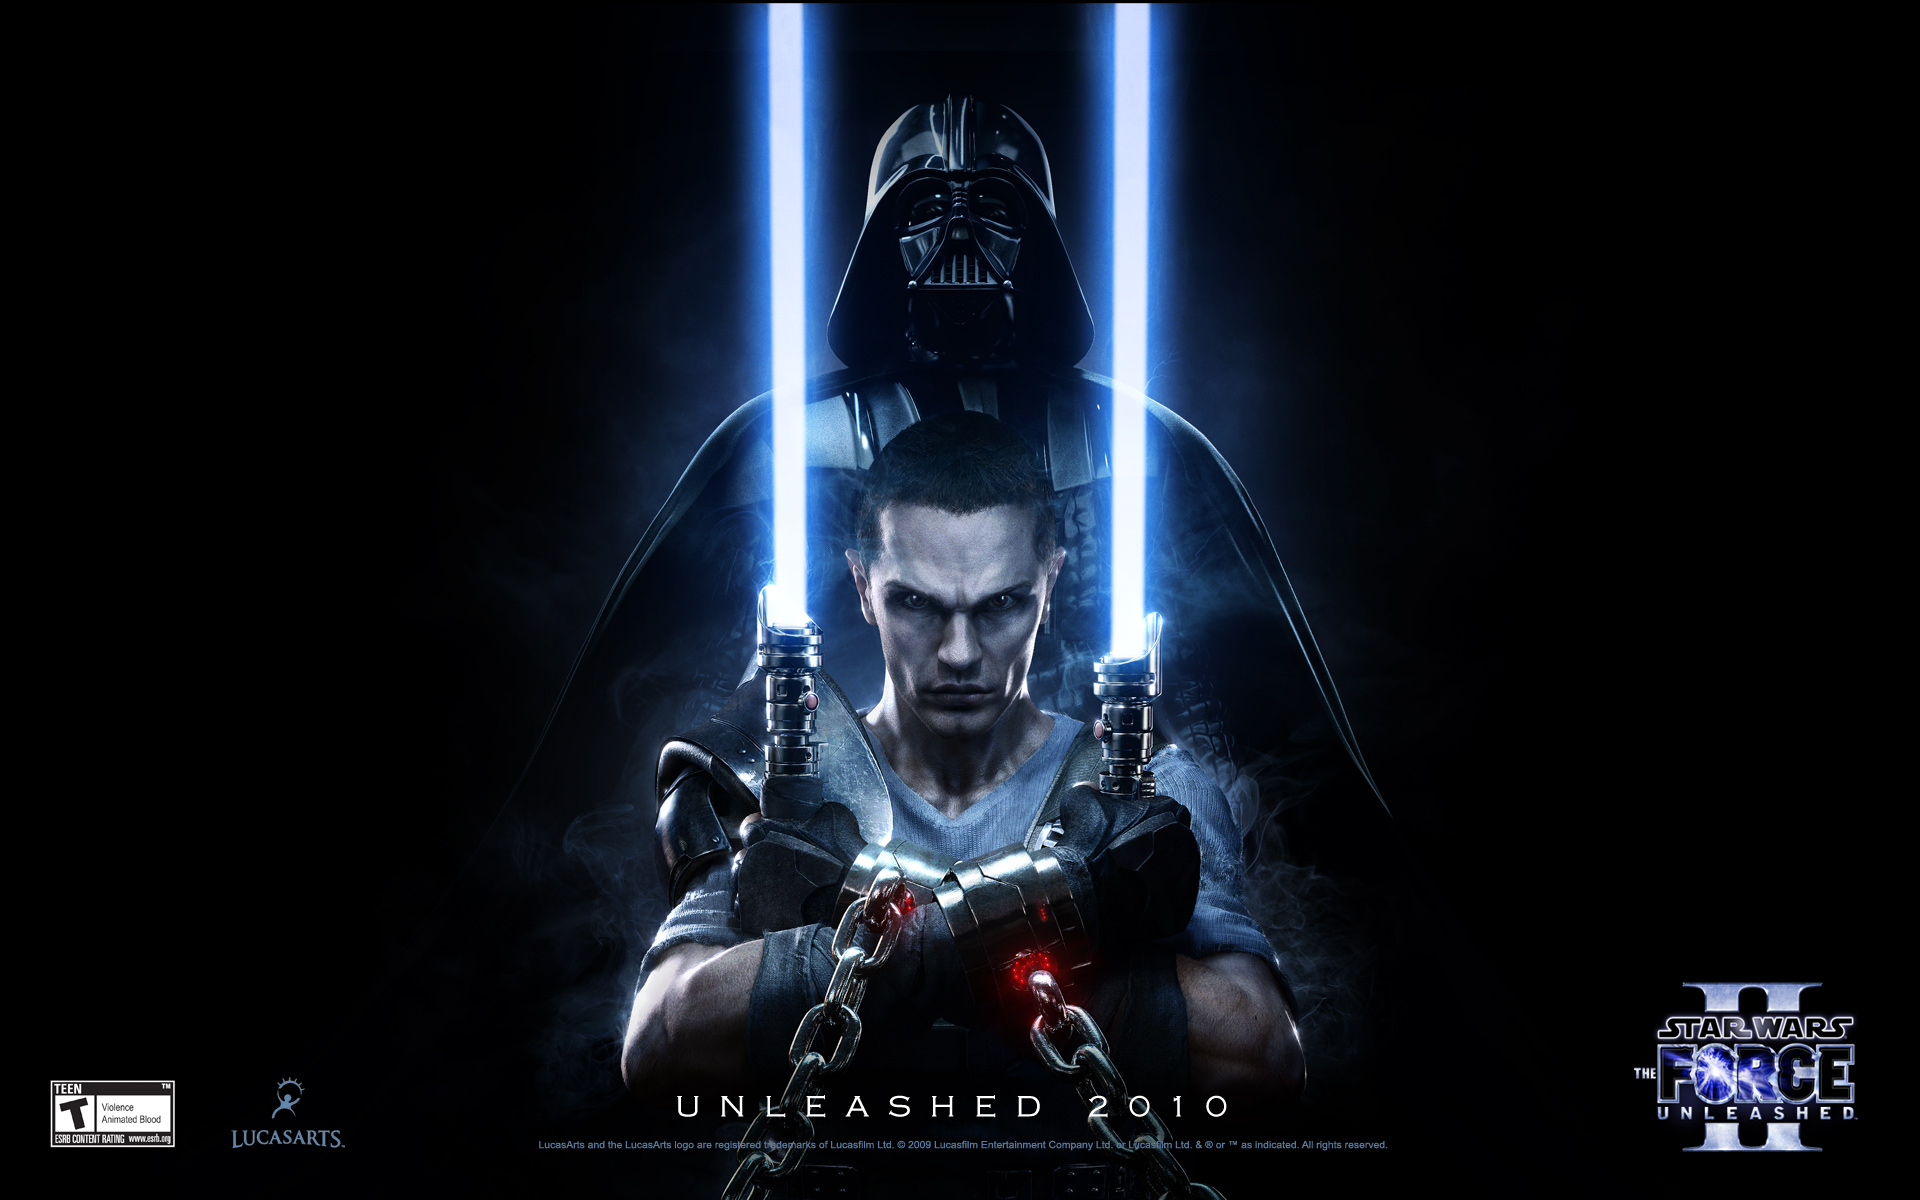 Darth vader unleashed wallpaper full hd